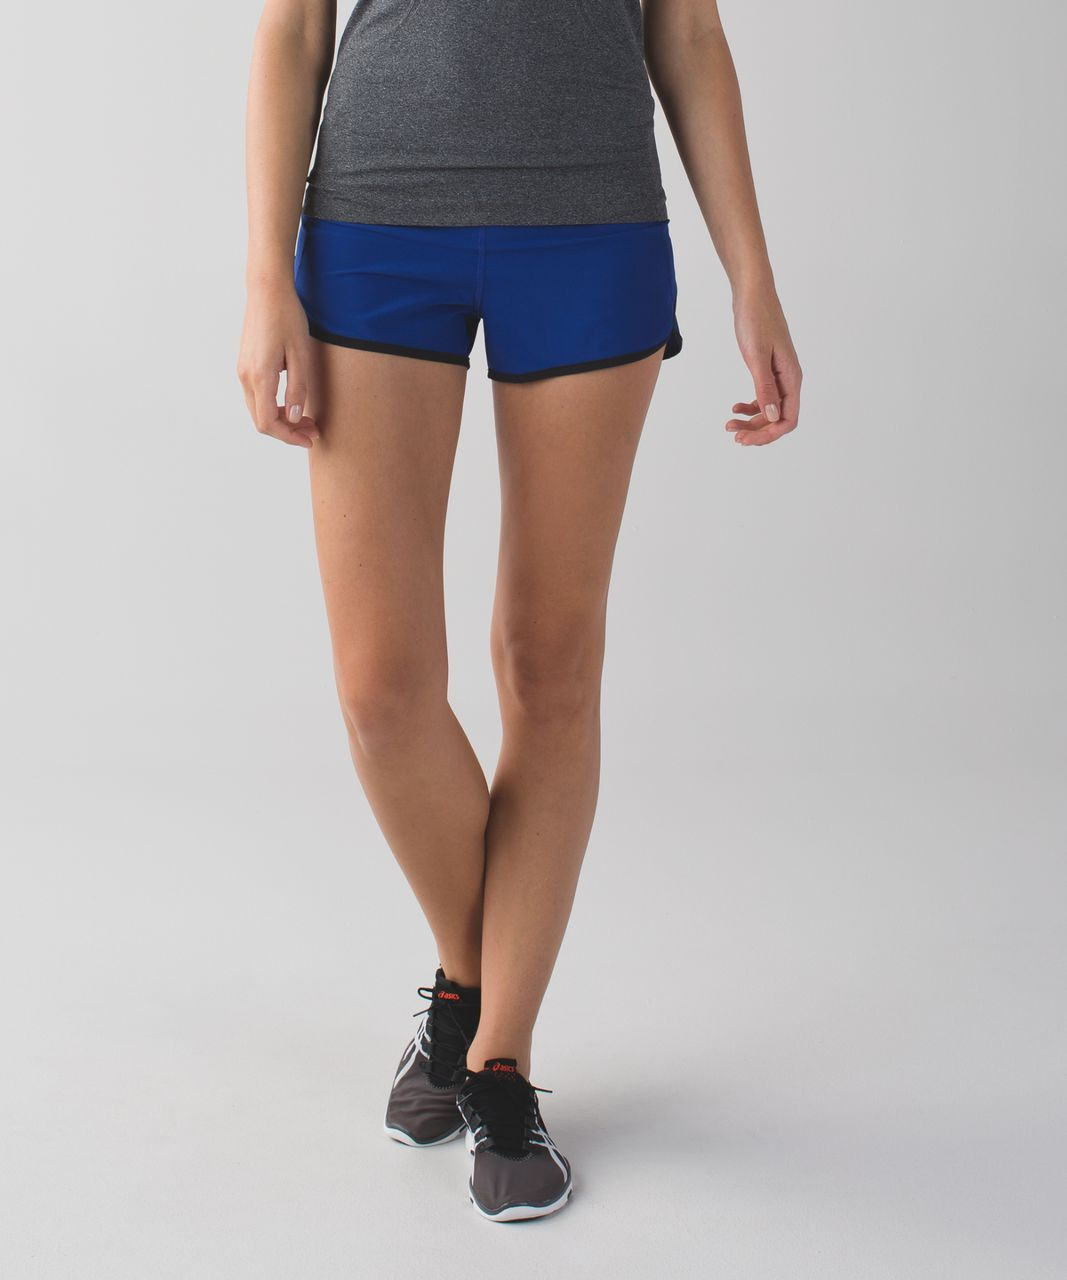 Lululemon Run:  Speed Short *4-way Stretch - Sapphire Blue / Washi Weave Angel Wing Naval Blue / Black